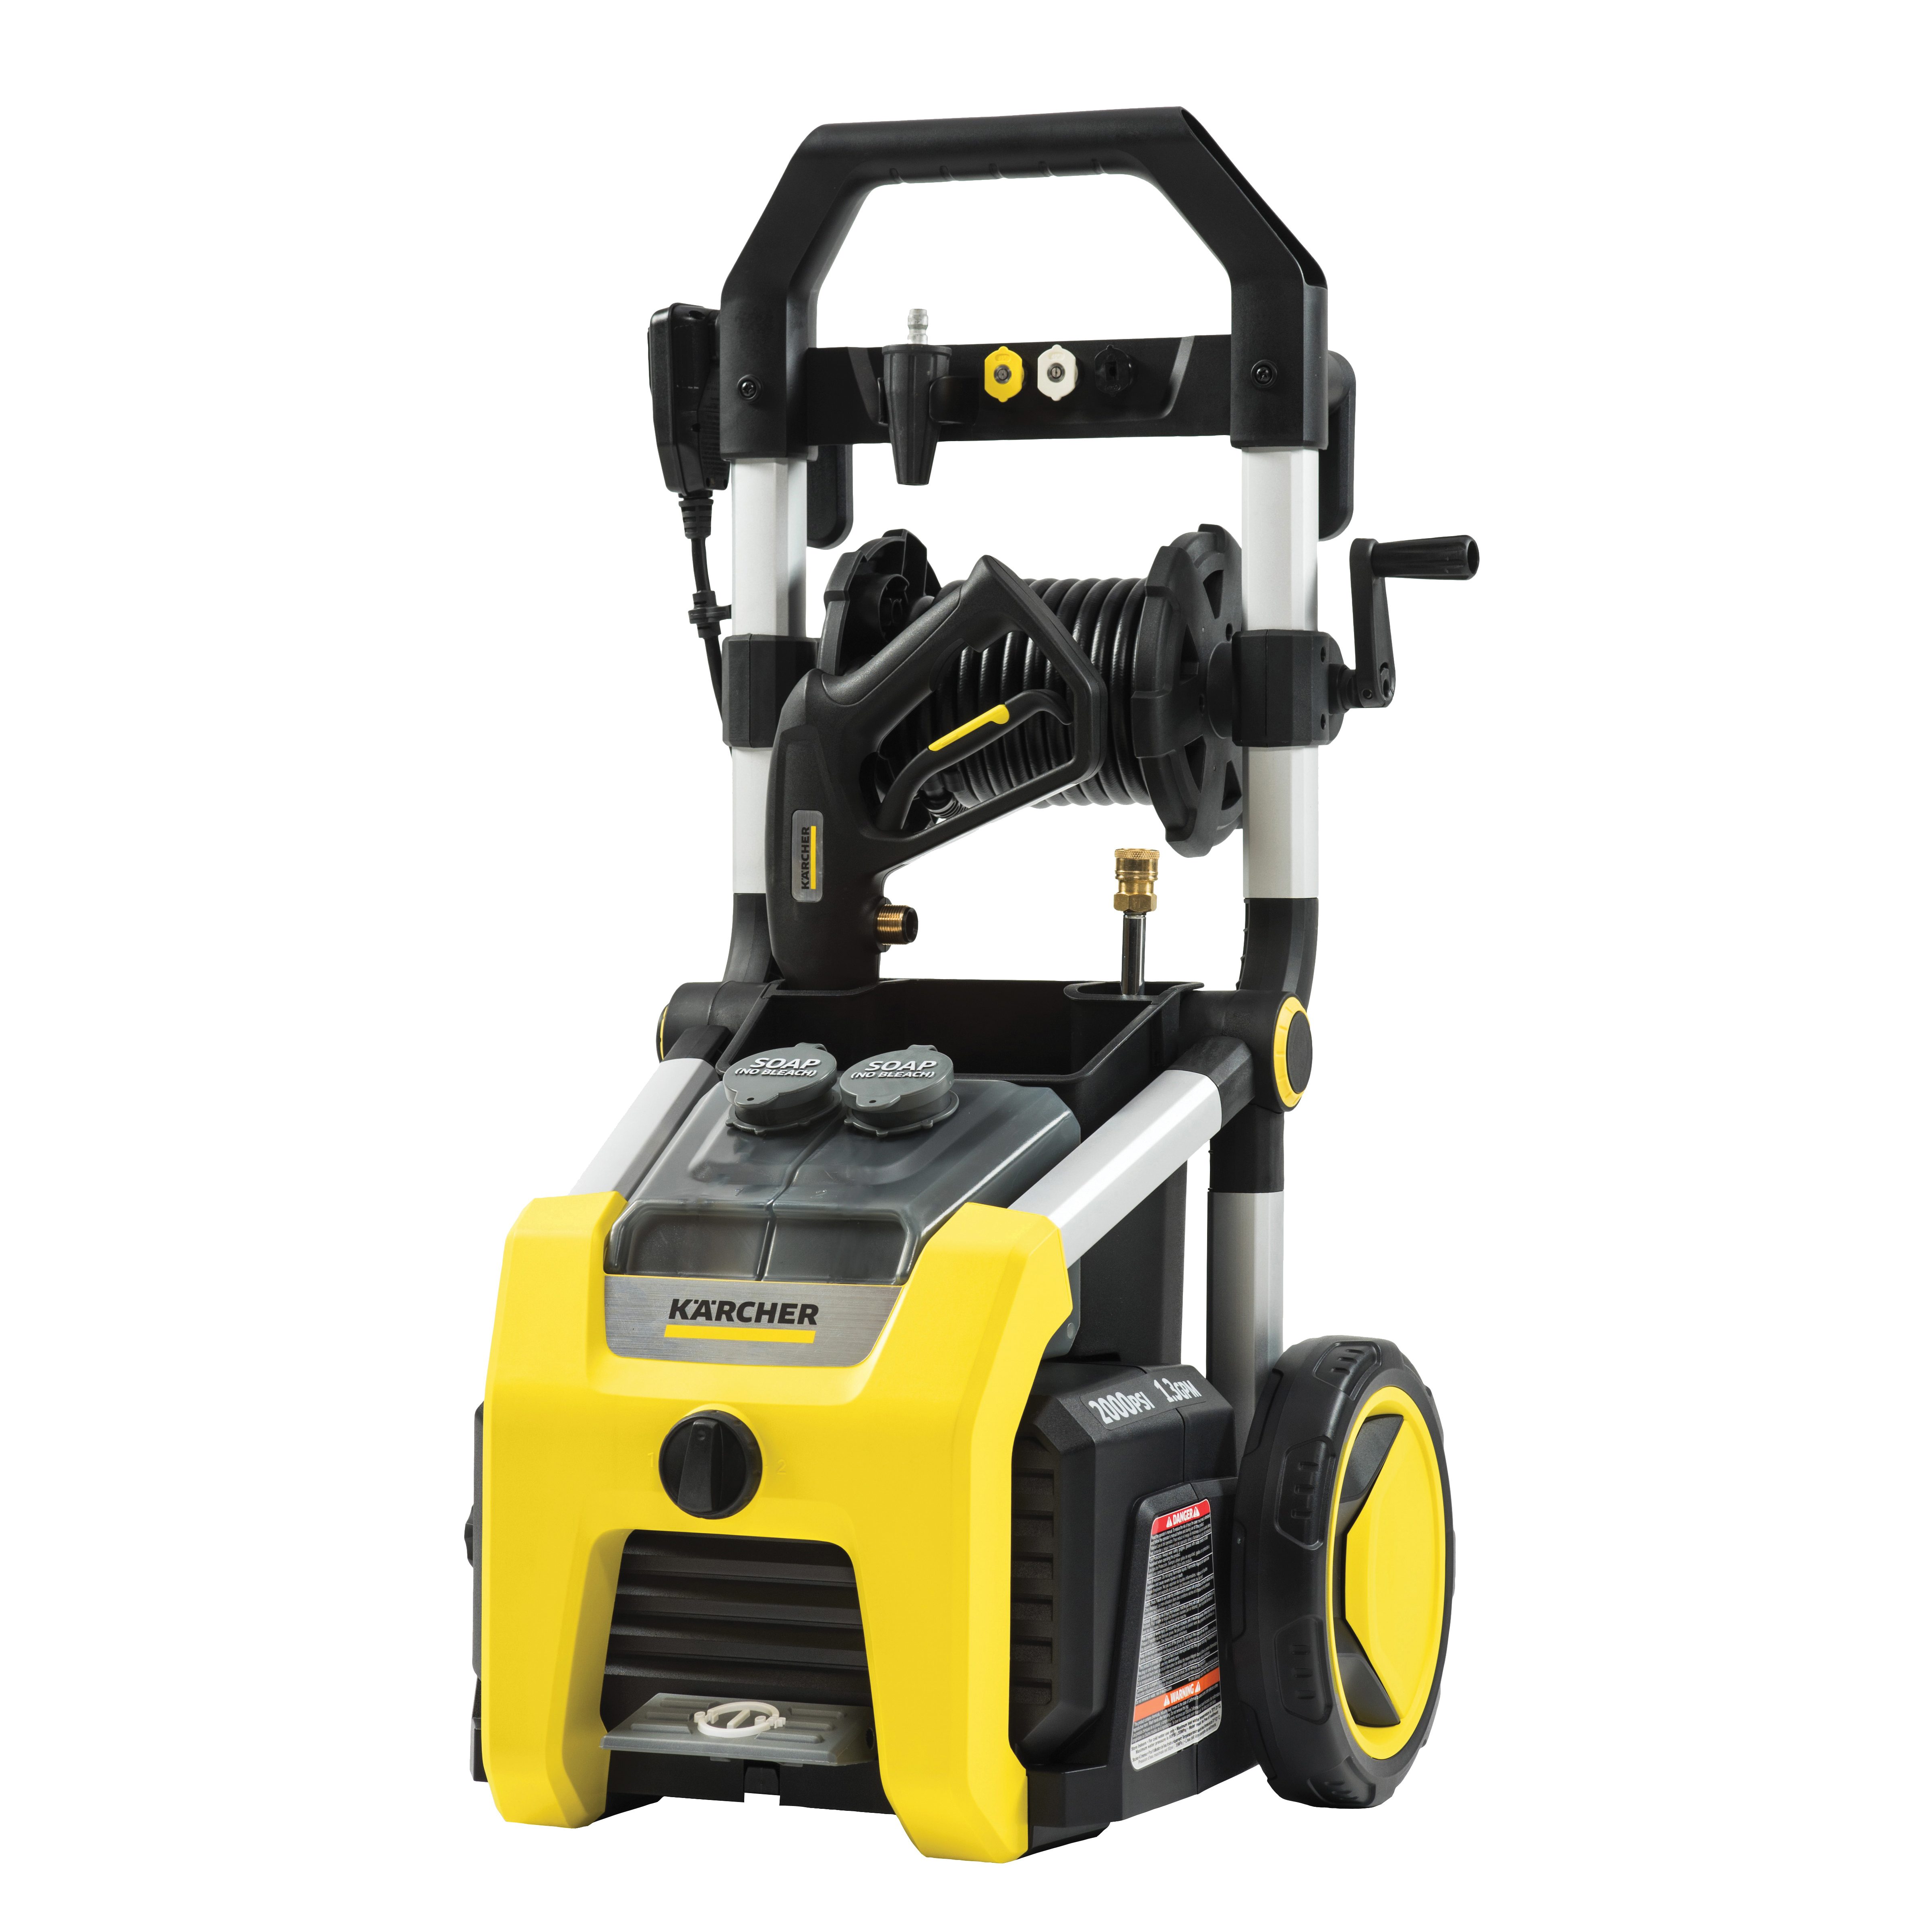 Picture of Karcher K2000 Pressure Washer, 1 -Phase, 13 A, 120 V, 2000 psi Operating, 1.3 gpm, Spray Nozzle, 25 ft L Hose